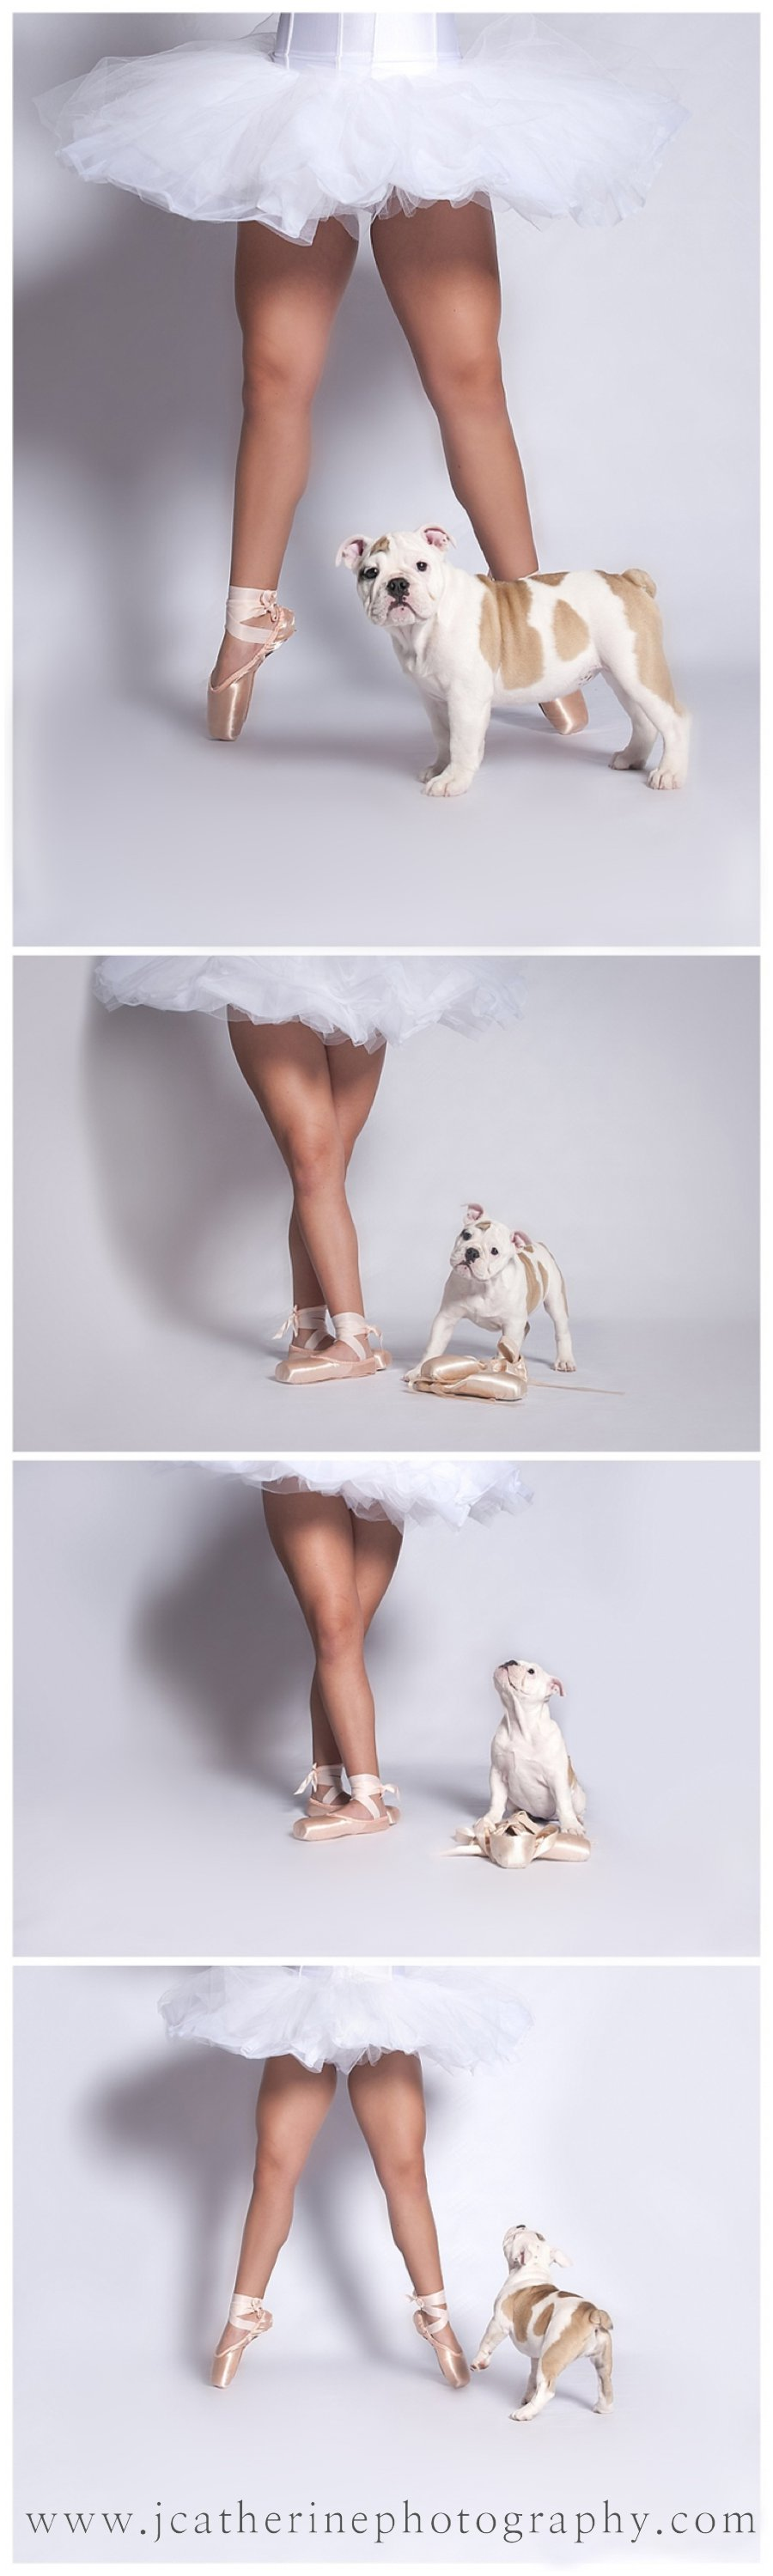 Mabel-dancing-ballerina-bulldog-j-catherine-photography-greenville-south-carolina.jpg